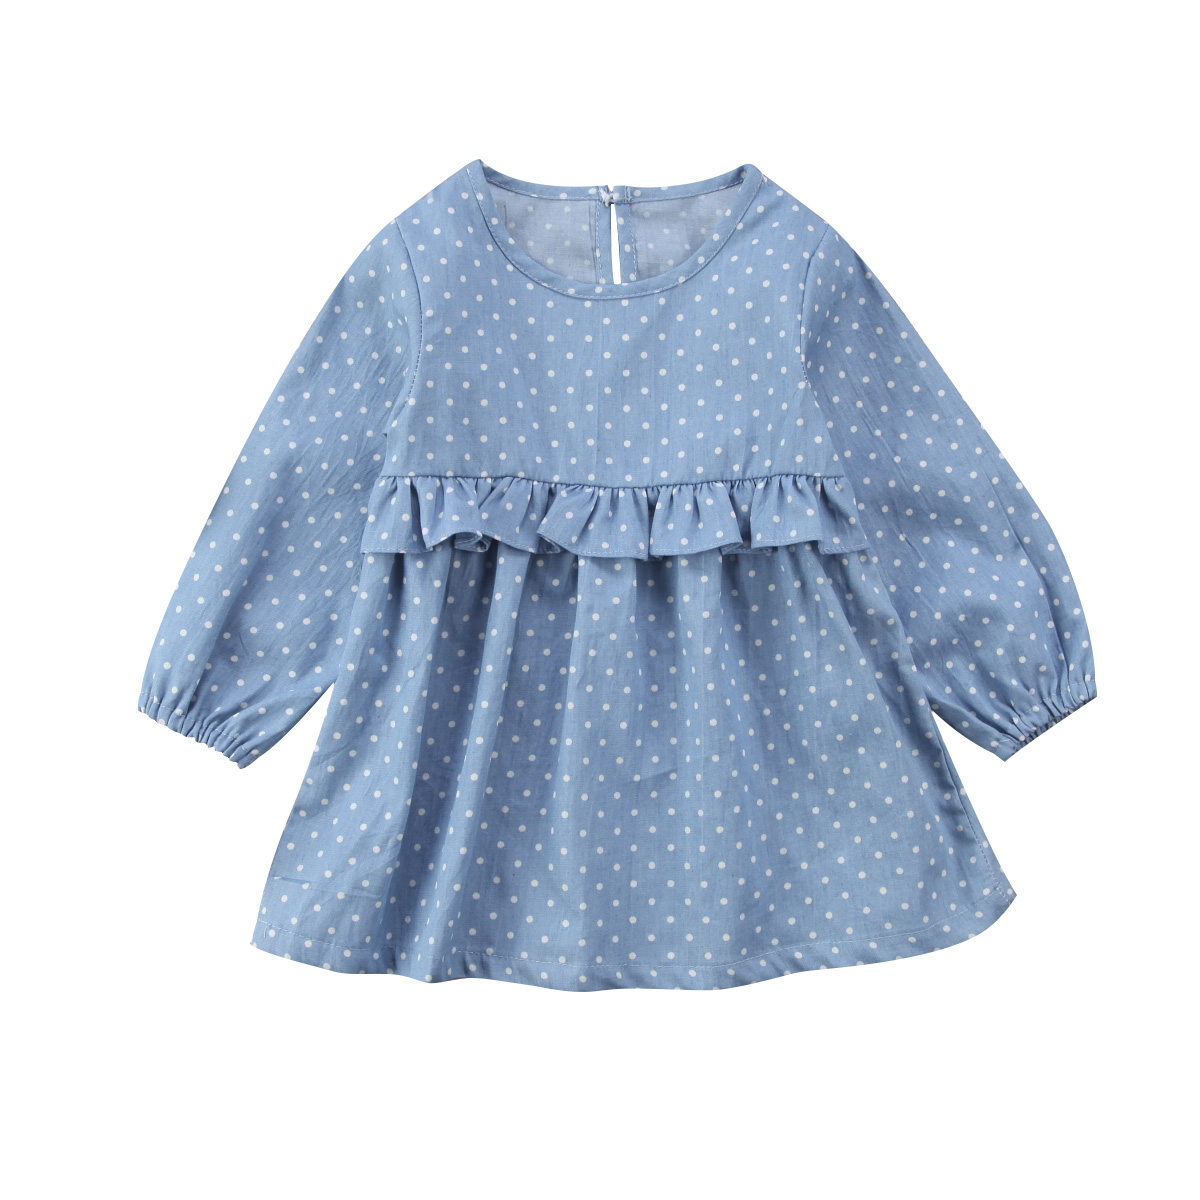 Soft Retro Style Netherlands Silhouette Jumpsuit Long Sleeve Cotton Rompers for Baby Boys and Girls